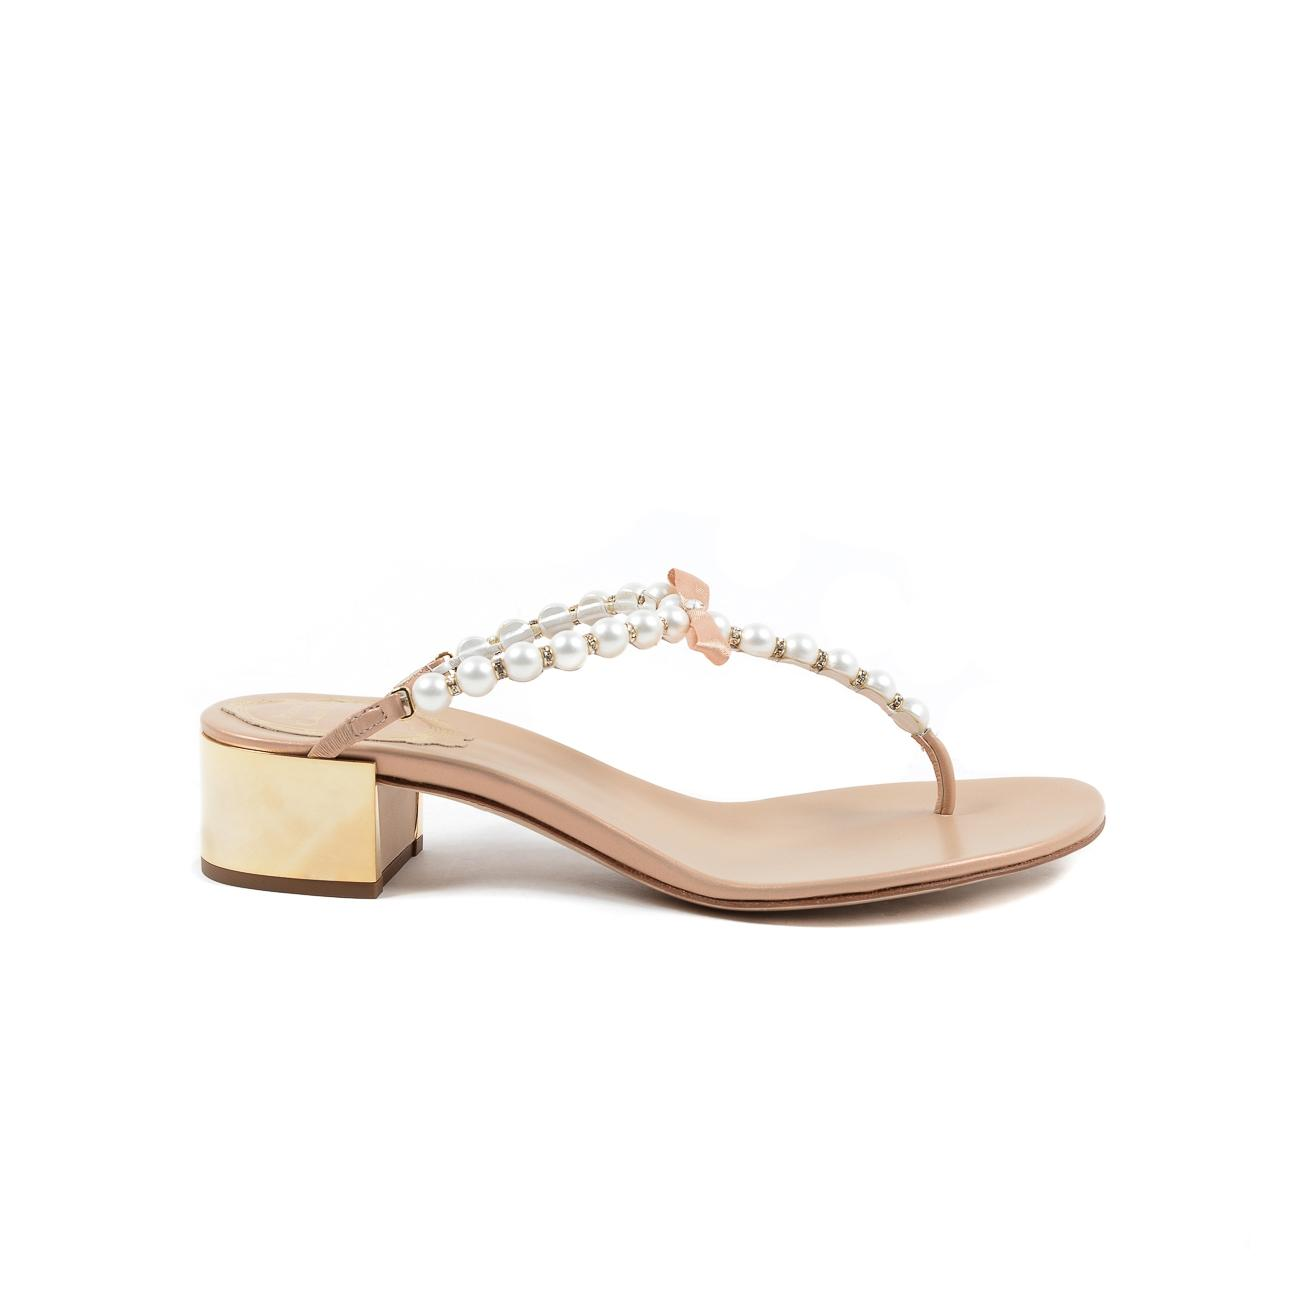 Rene Caovilla Pink Eliza Flip 40 Leather Pearl Sandals Size US 9 Regular (M, B)